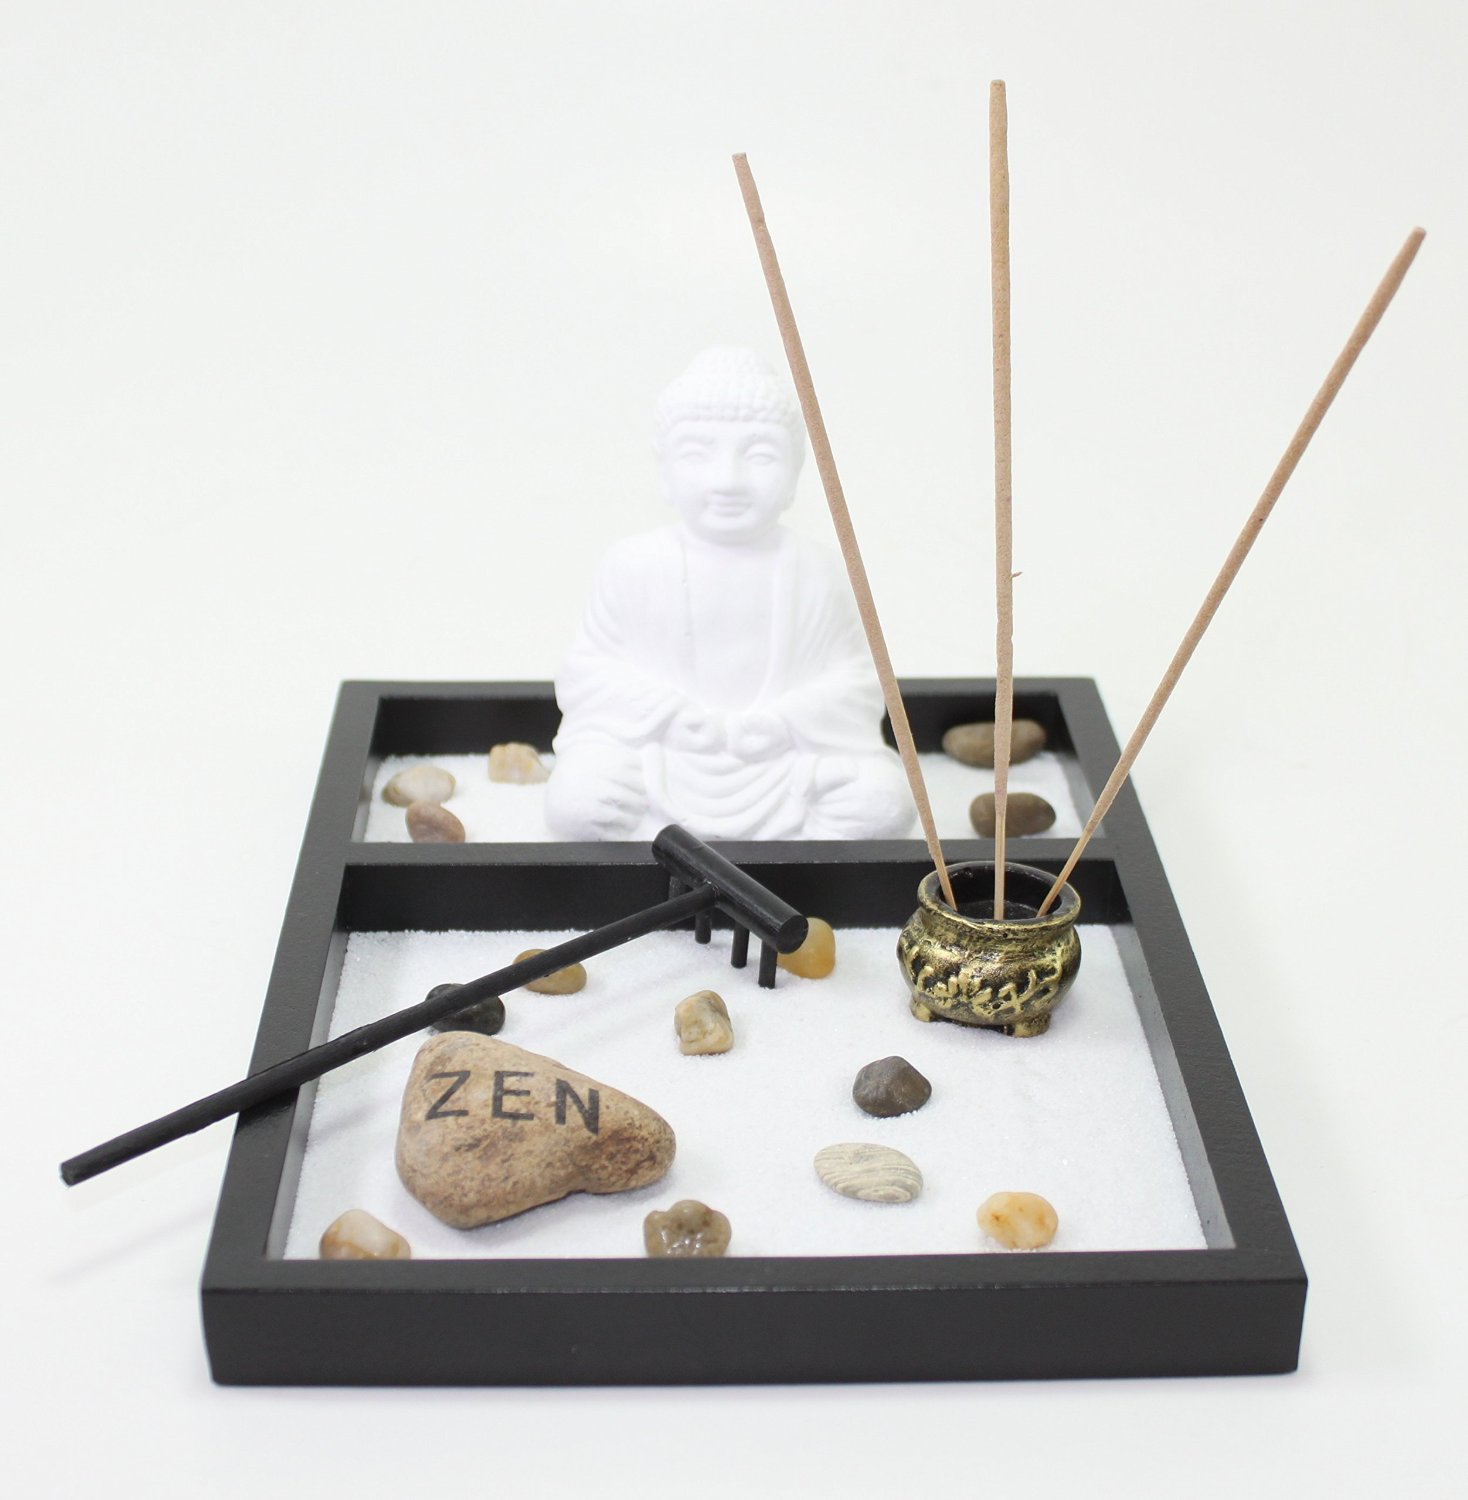 Table Top Zen Garden Buy Tabletop Zen Garden White Sand Buddha Rock Rake Incense Burner